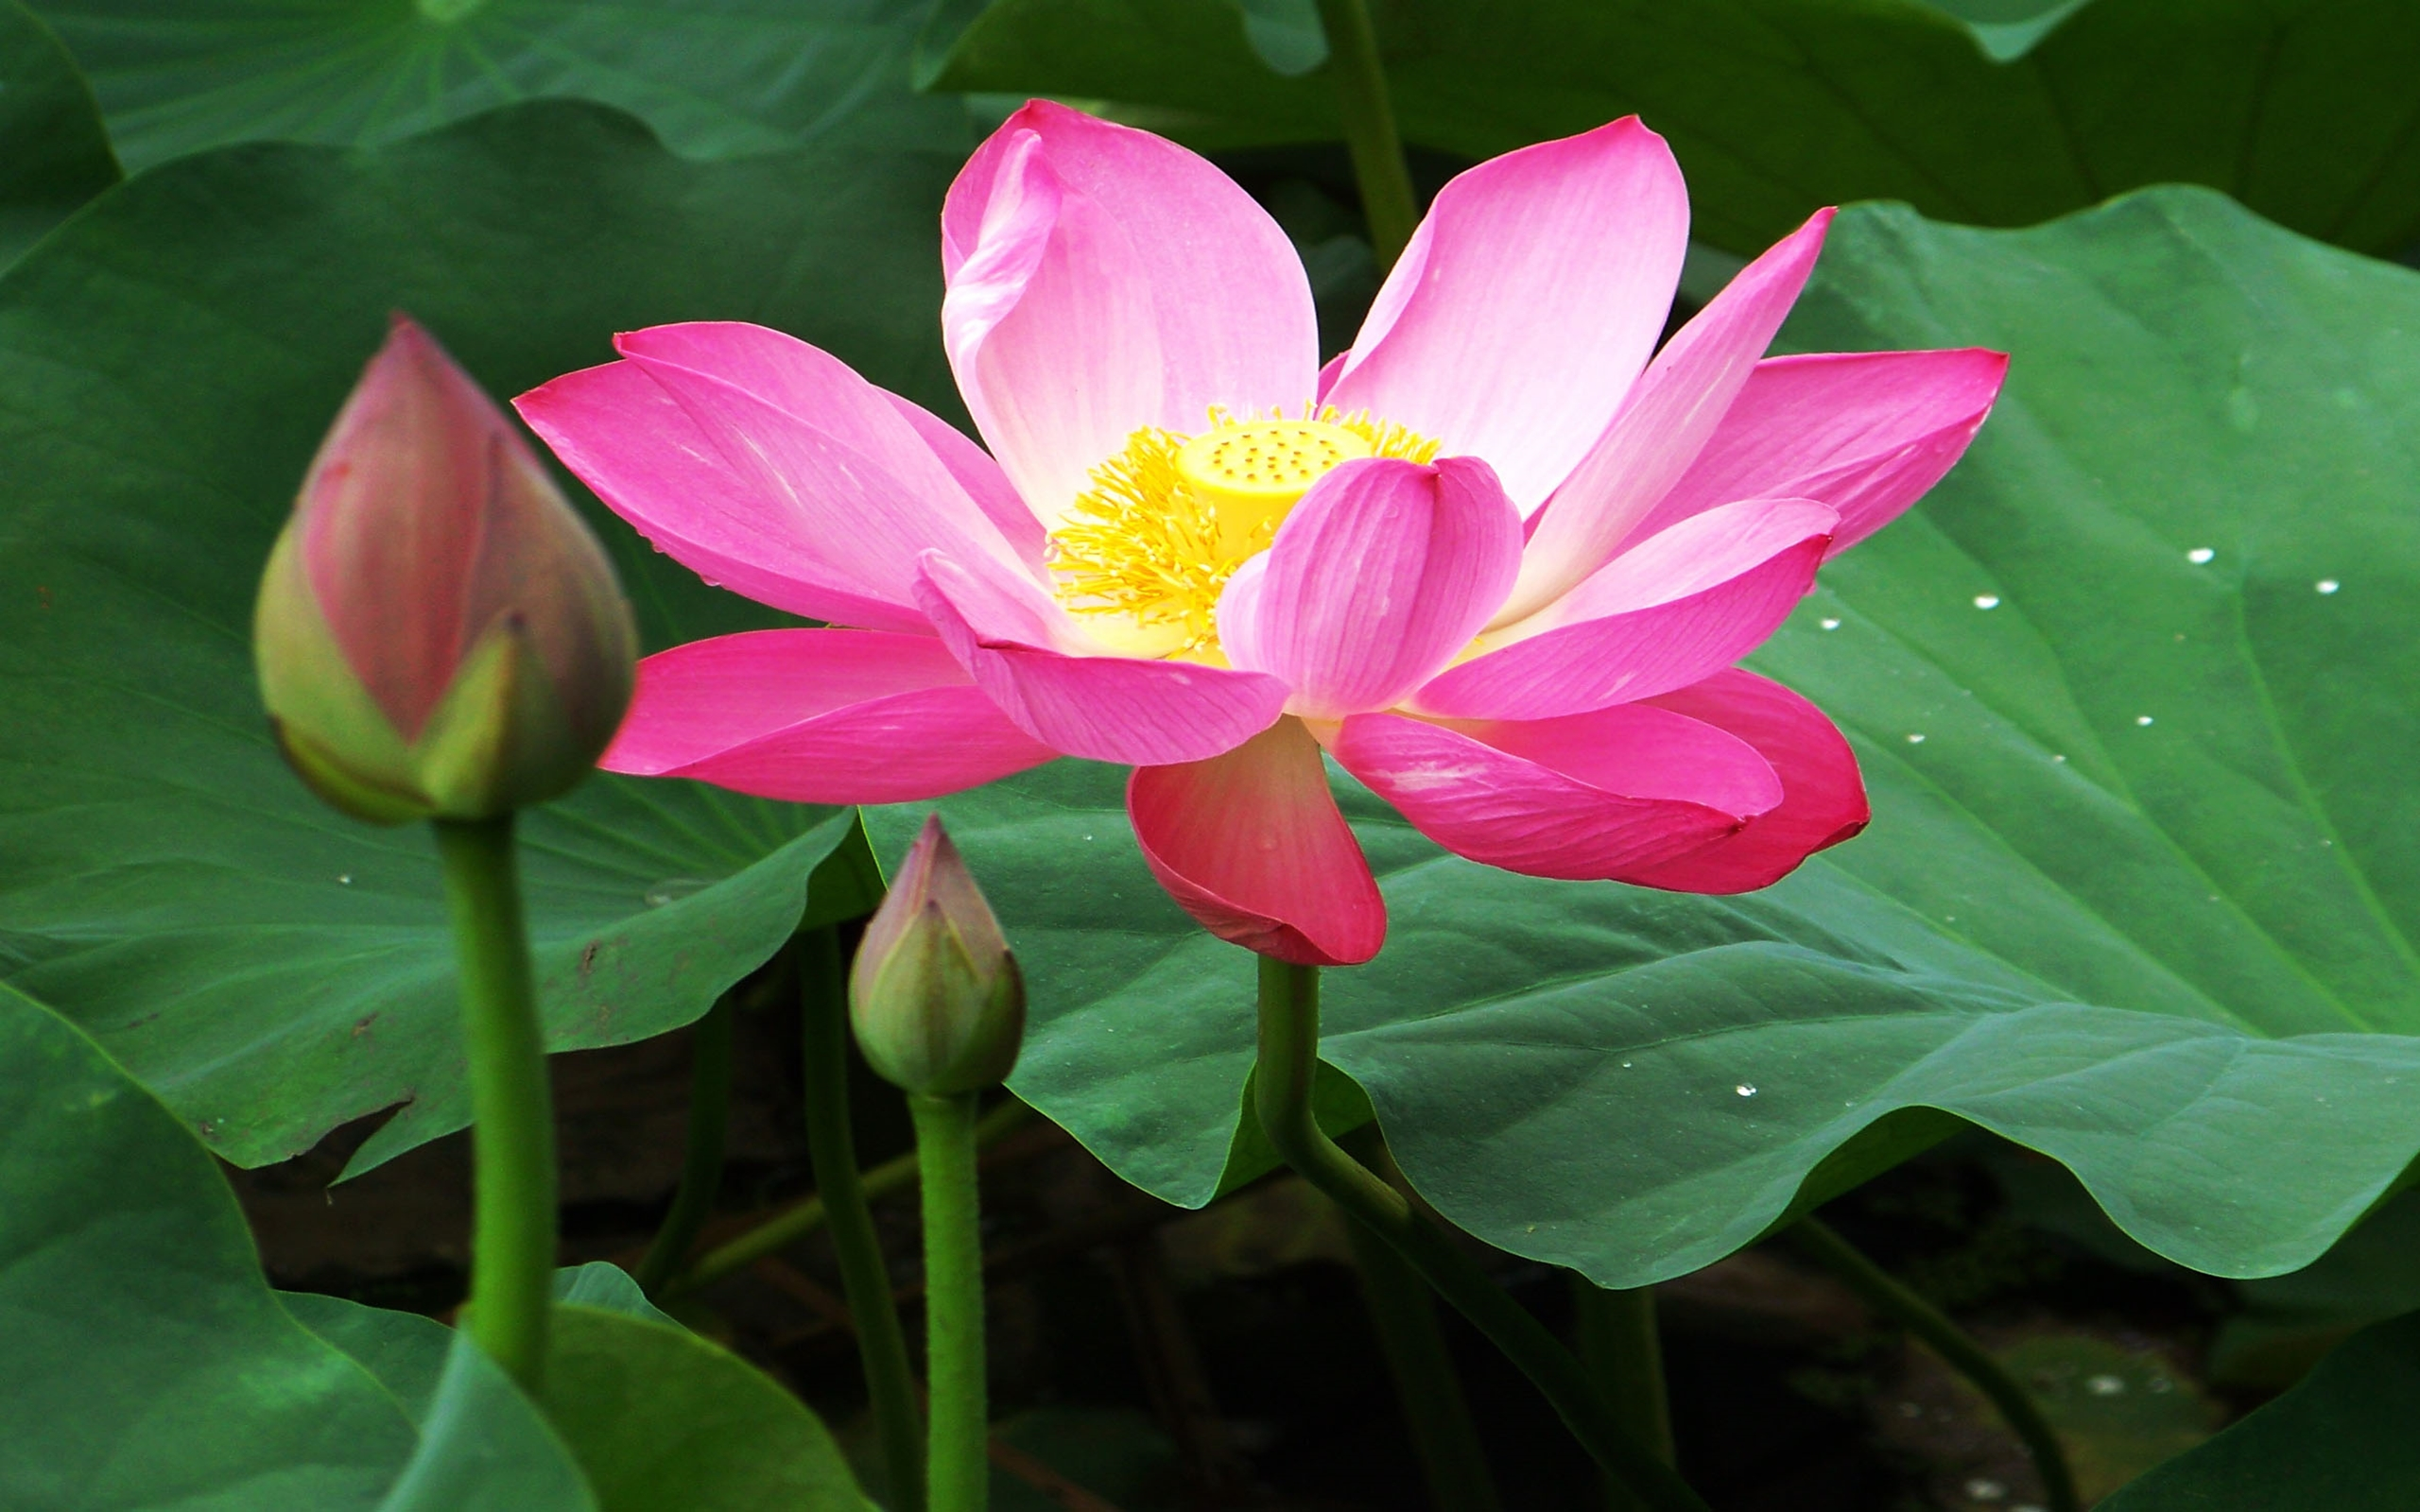 Smiley Wallpapers With Quotes Beautiful Lotus Flowers Wallpapers 07 Wallpapers13 Com